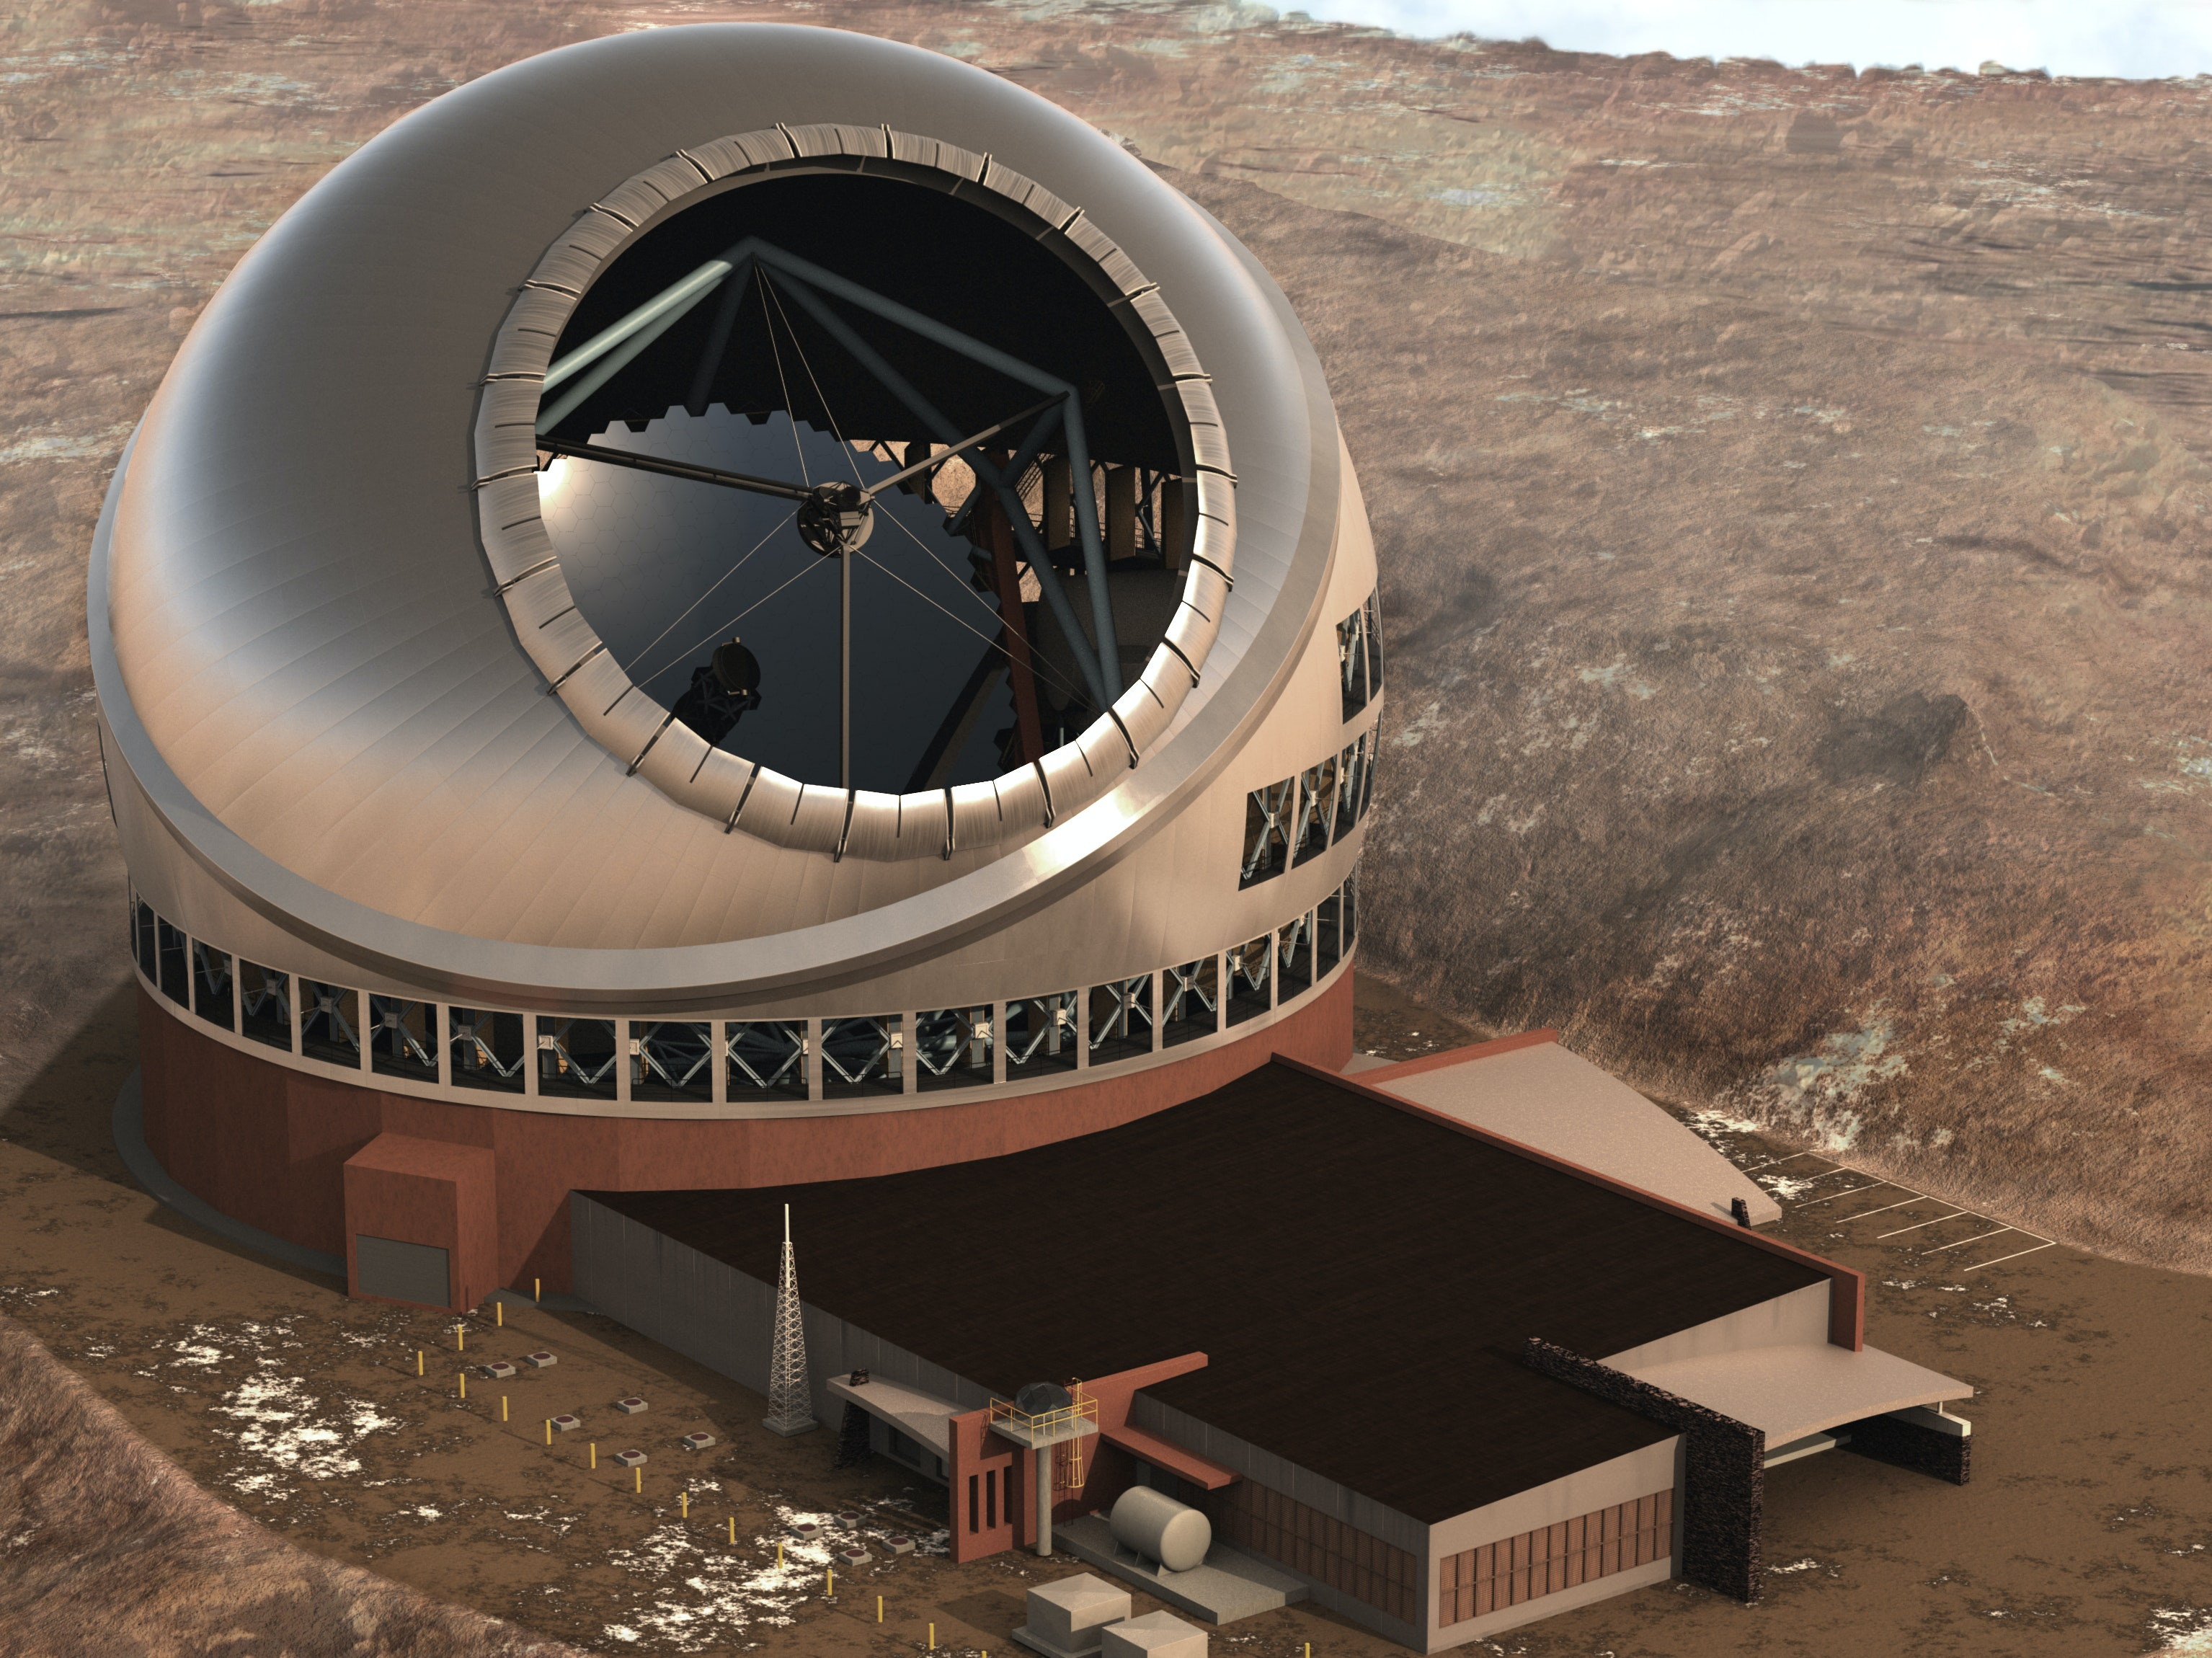 Hawaiians' Outcry Could Relocate World's Largest Telescope